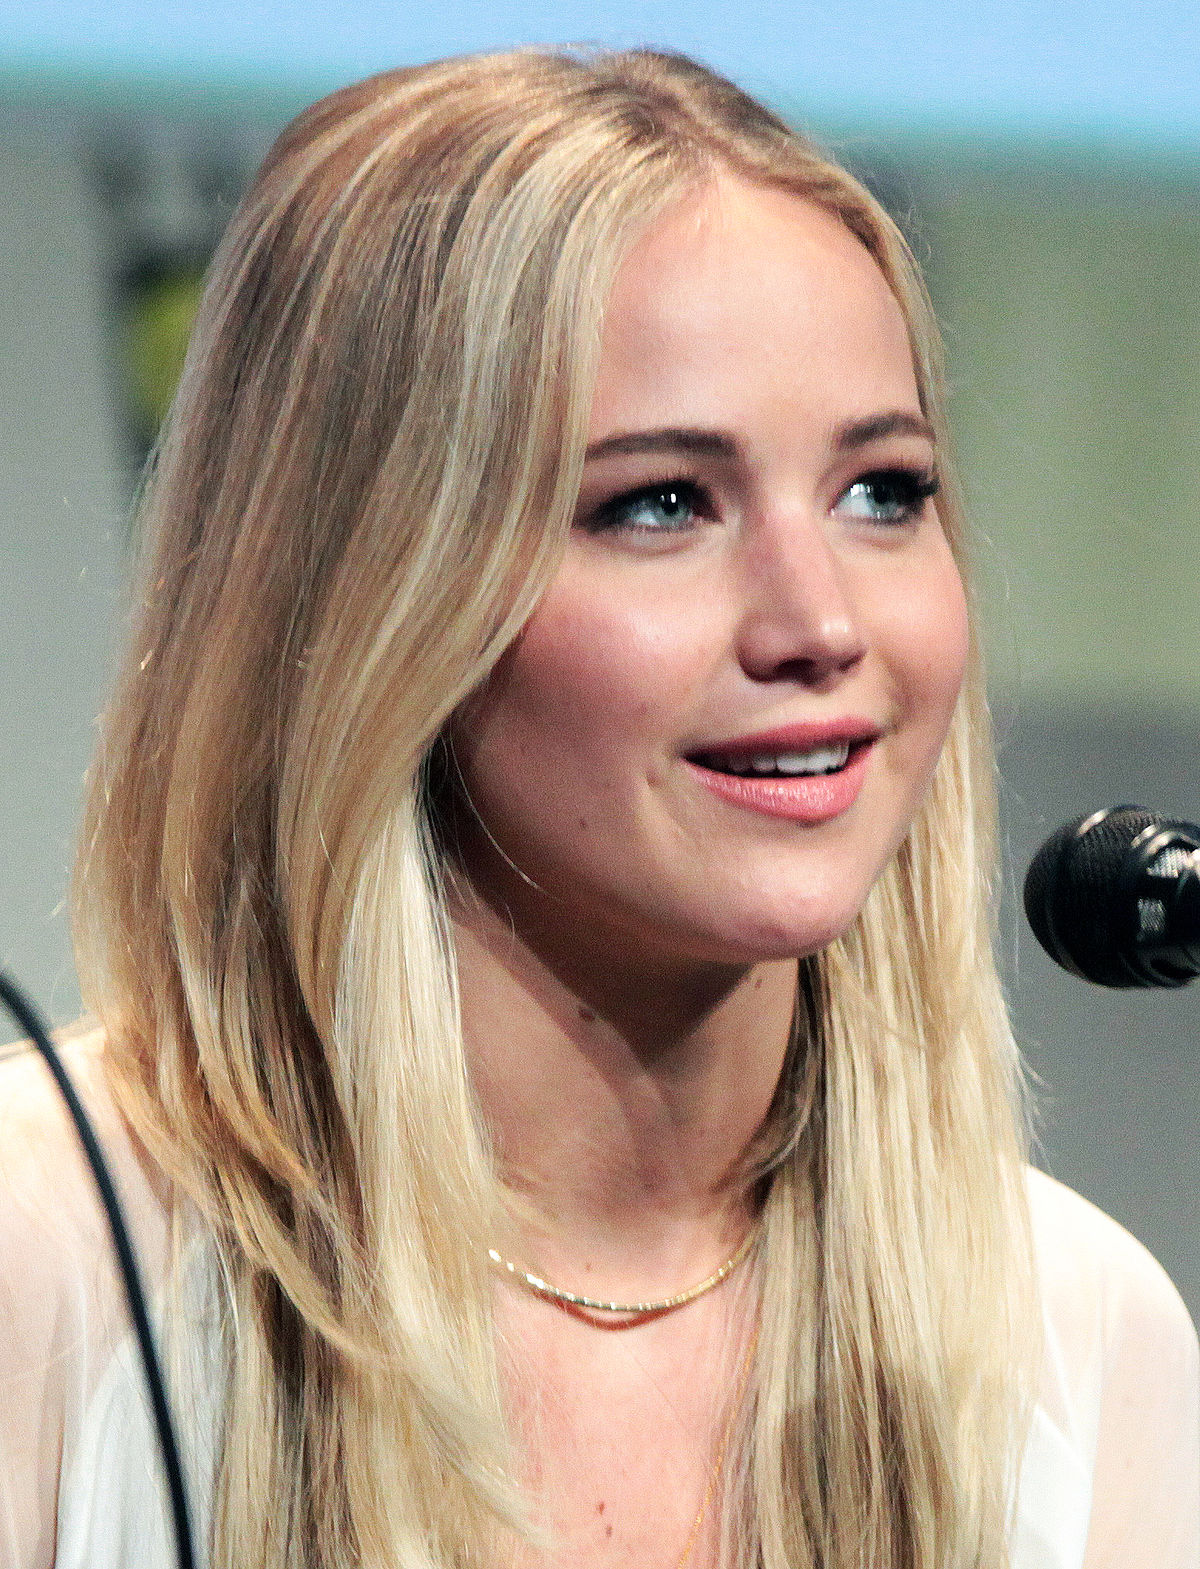 Jennifer Lawrence - Wikipedia